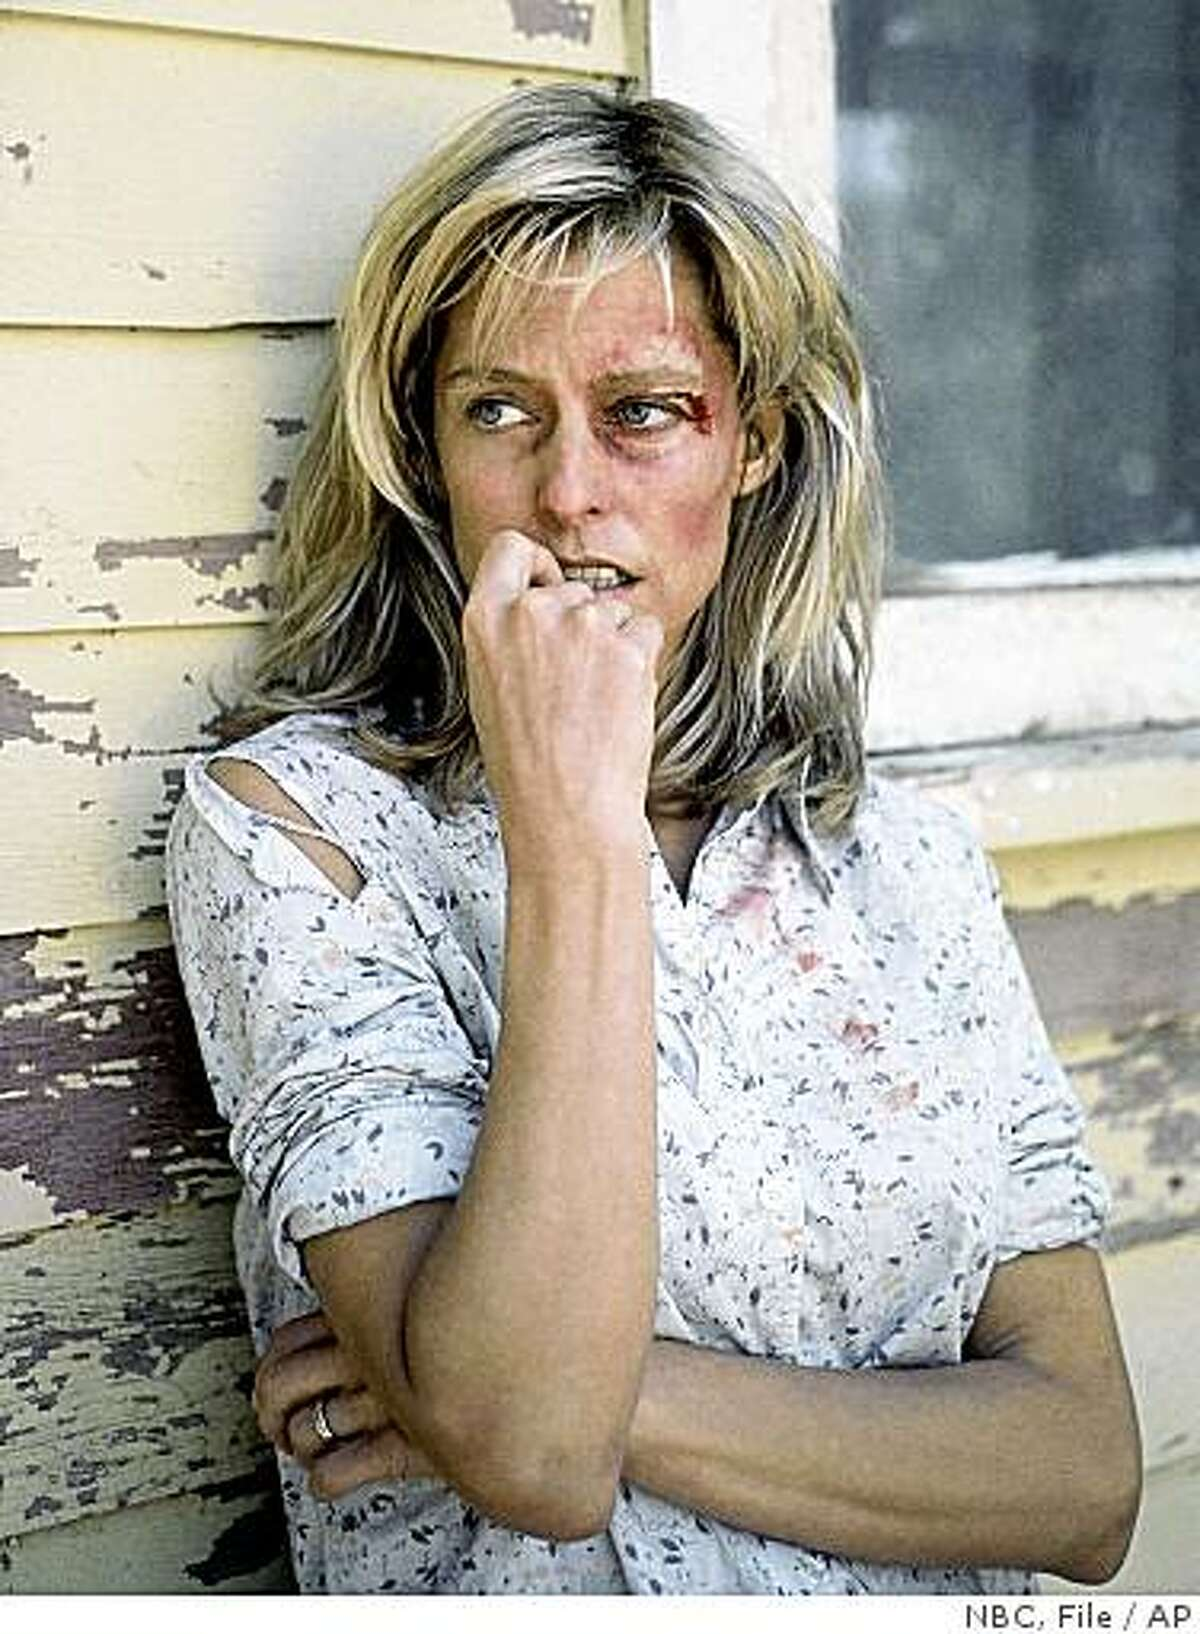 FILE - In this Aug. 1984 file photo originally released by NBC, actress Farrah Fawcett is shown in character in a scene from,